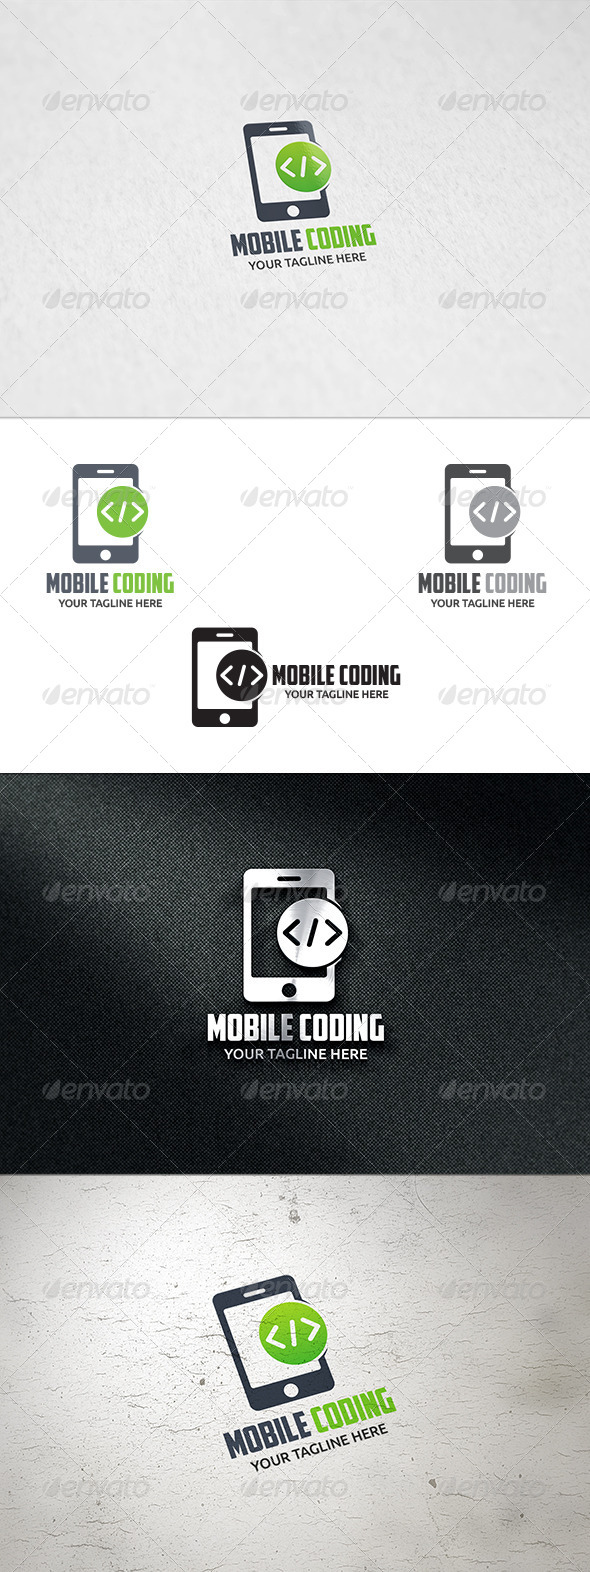 GraphicRiver Mobile Coding Logo Template 8537873